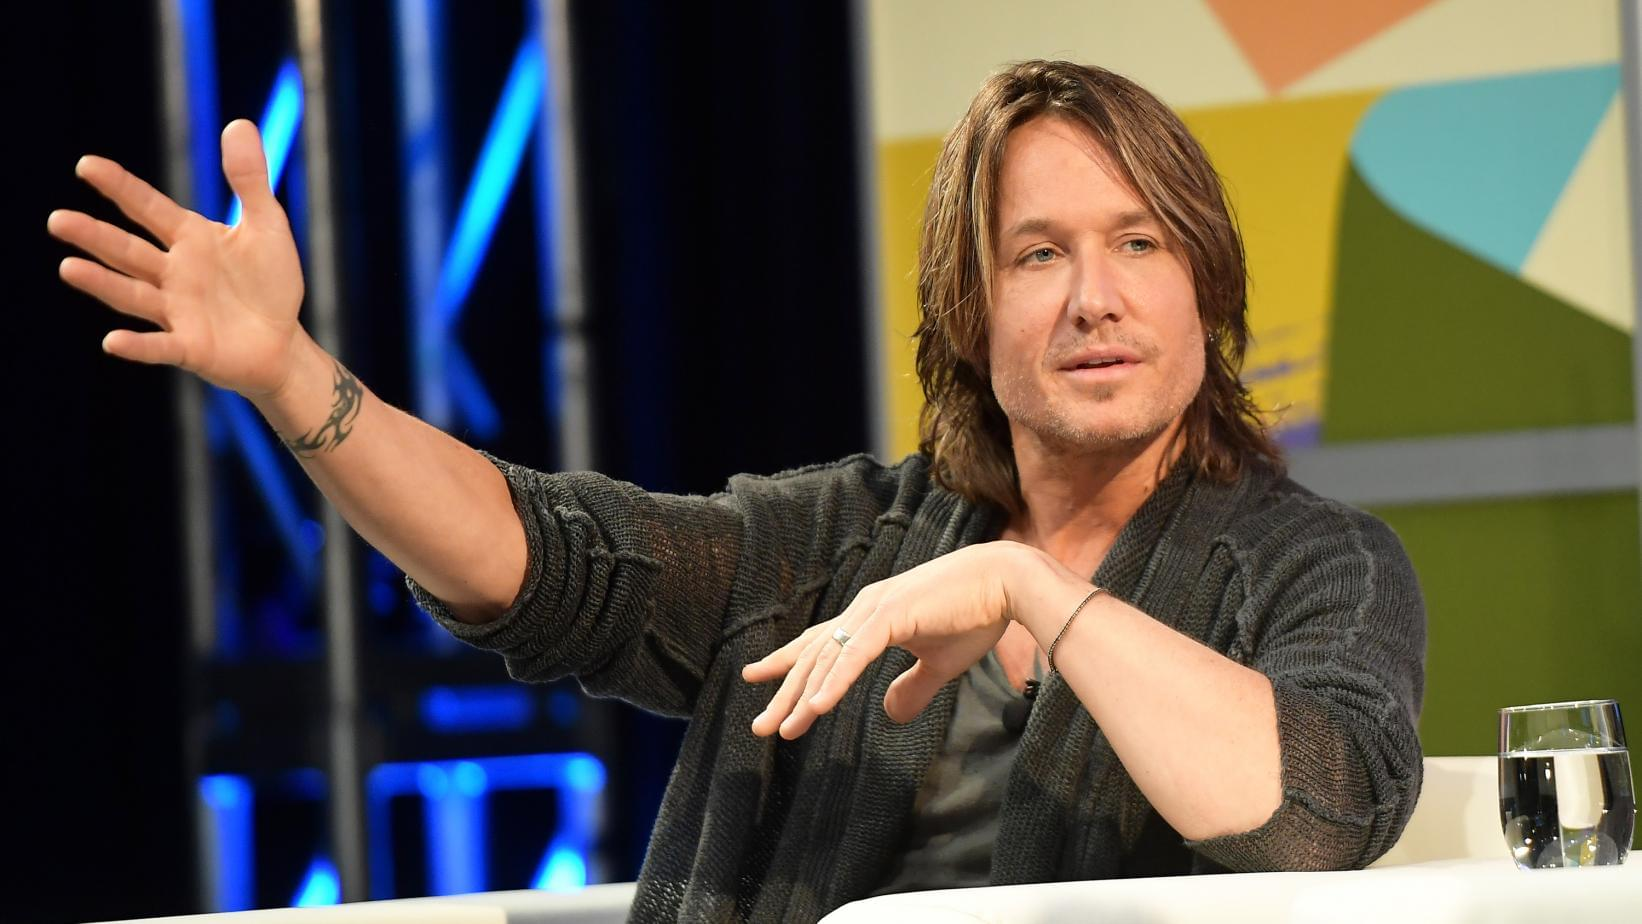 Keith Urban On New Album 'Graffiti U,' Sampling Haggard, Writing With Ed Sheeran